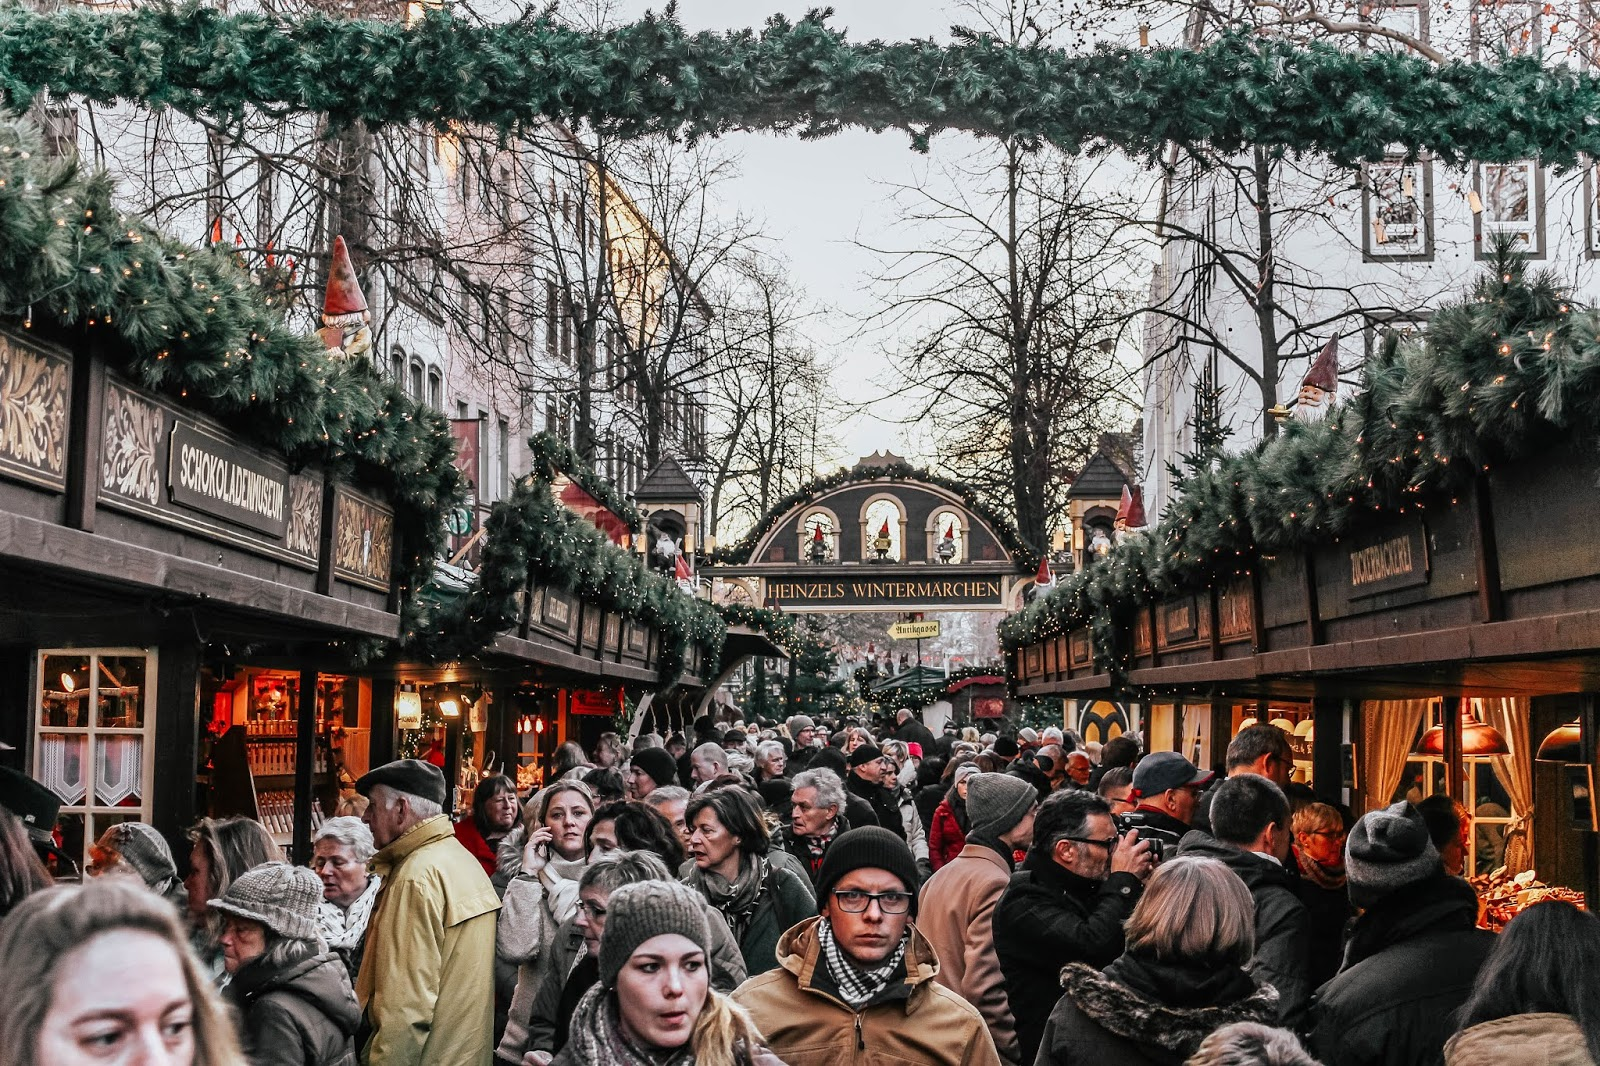 Germany Cologne Christmas Heinzels Wintermarchen